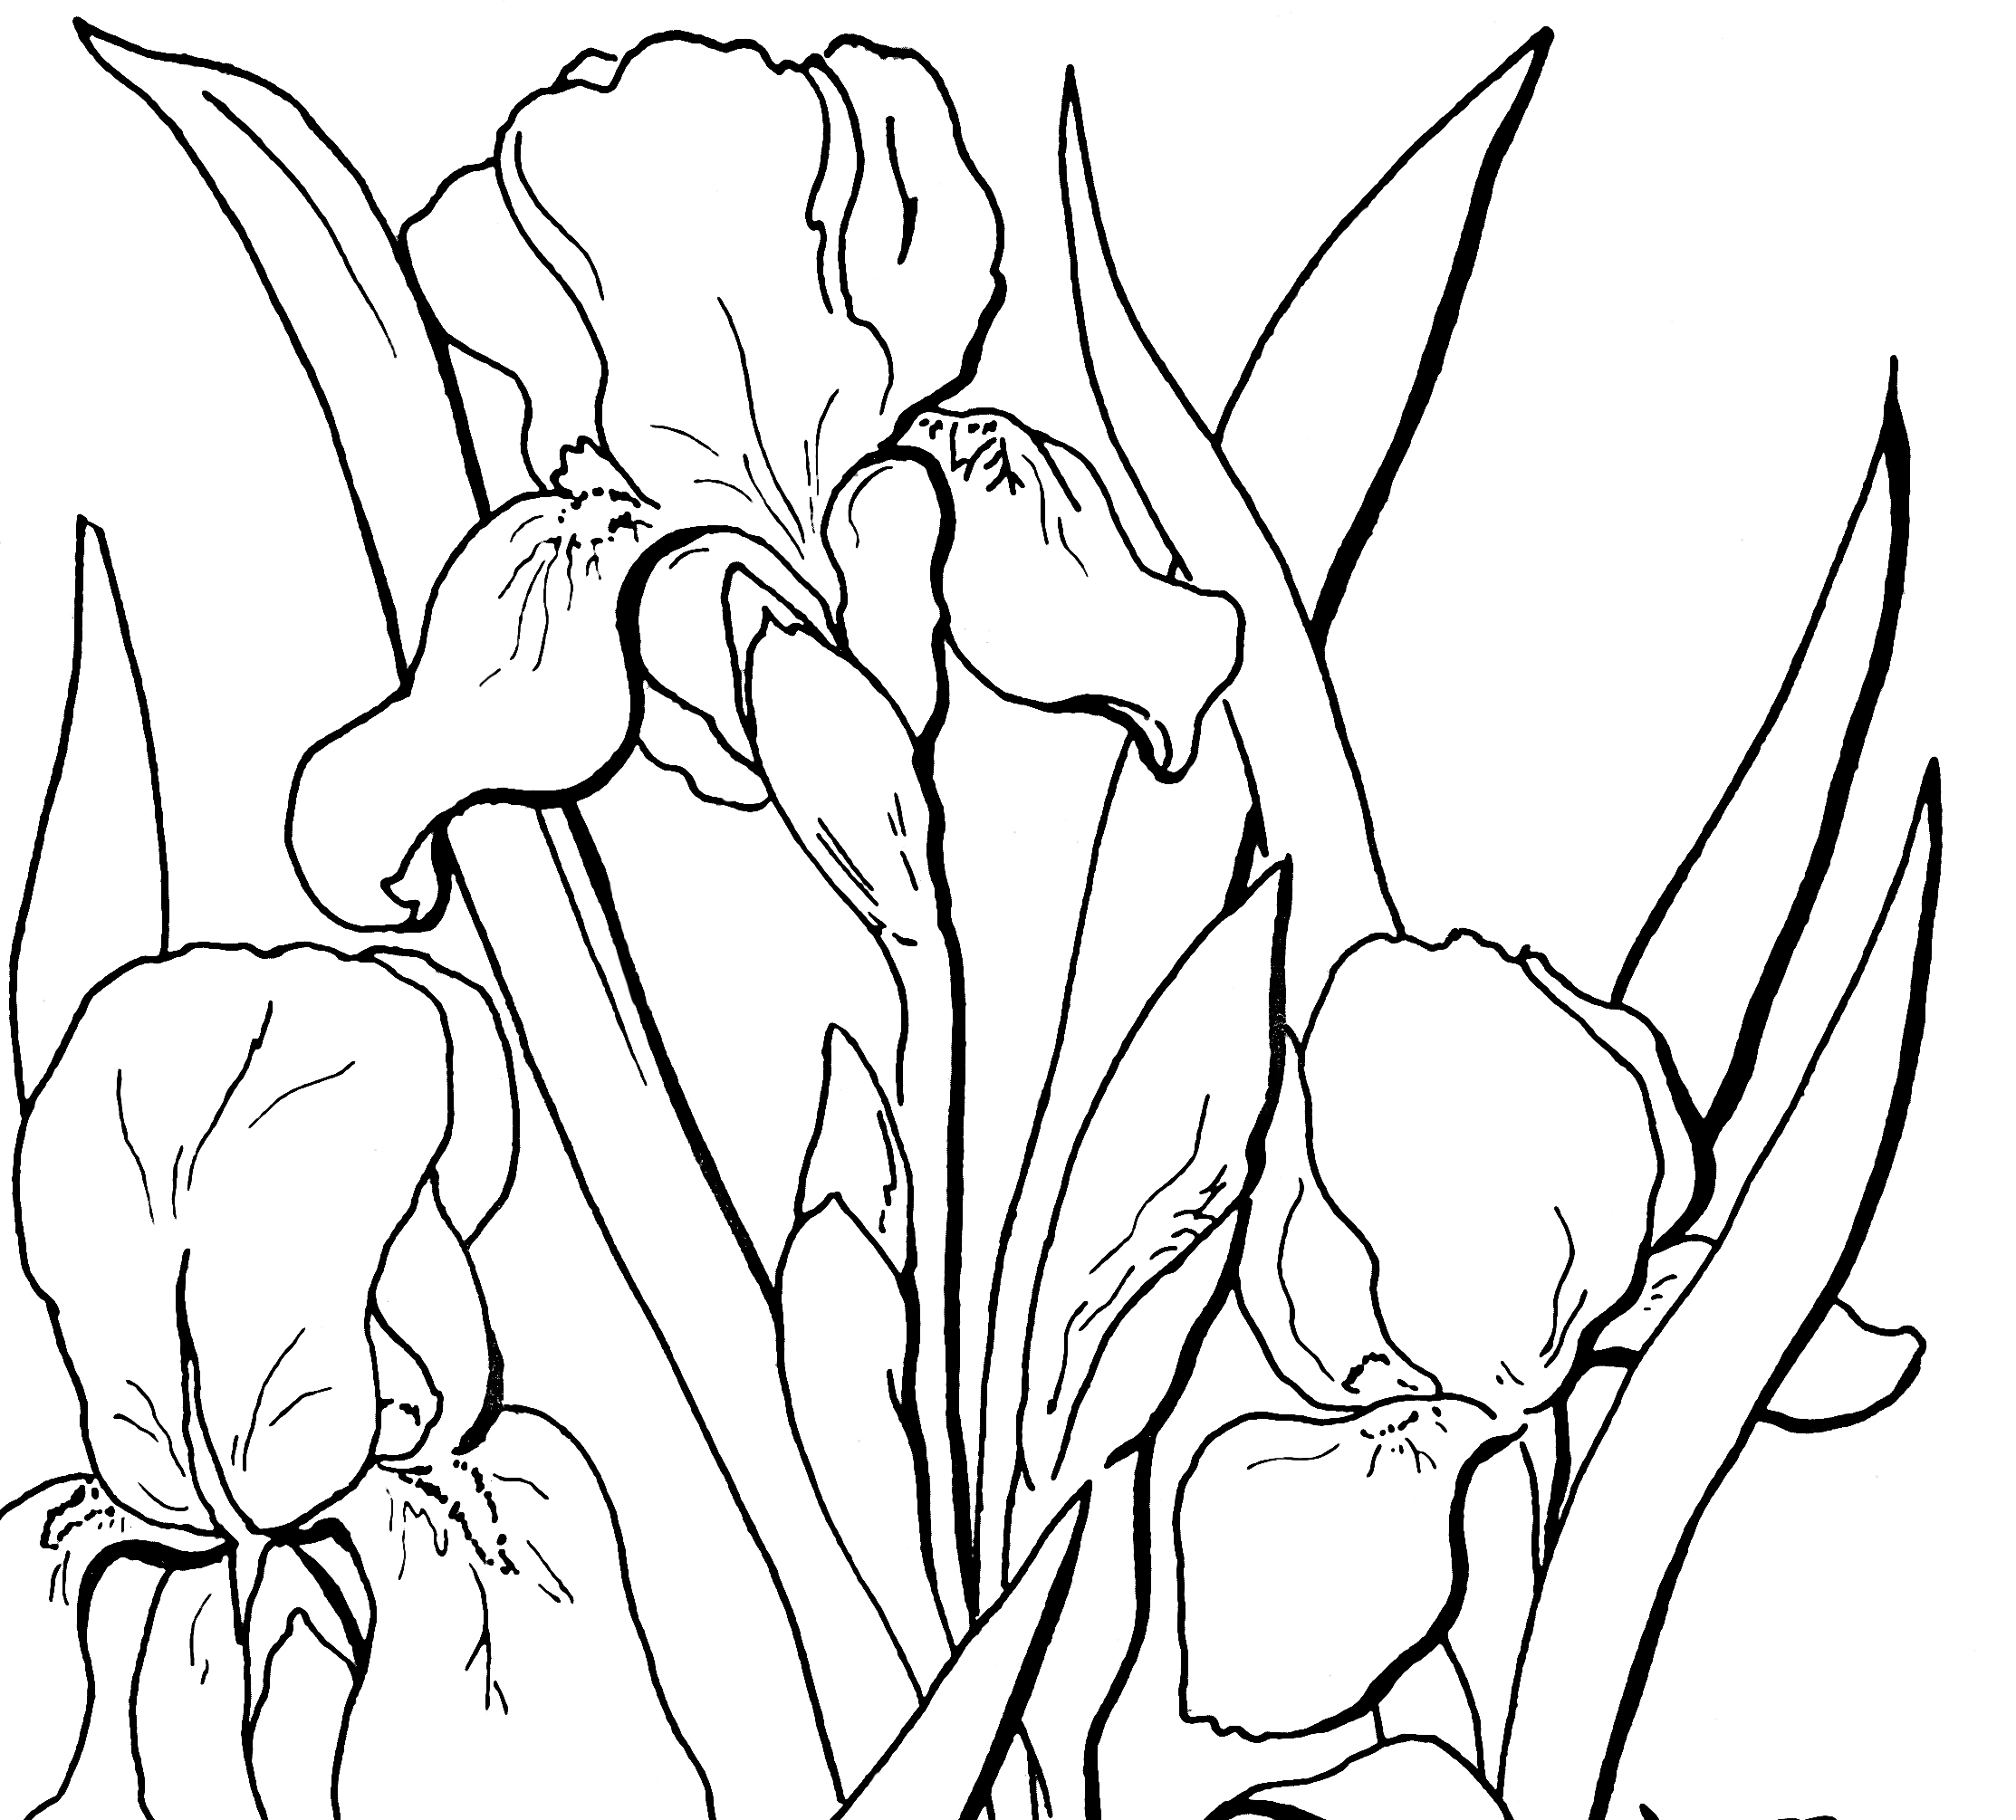 wwwfree coloring pagescom coloring pages for adults pdf free download wwwfree coloring pagescom